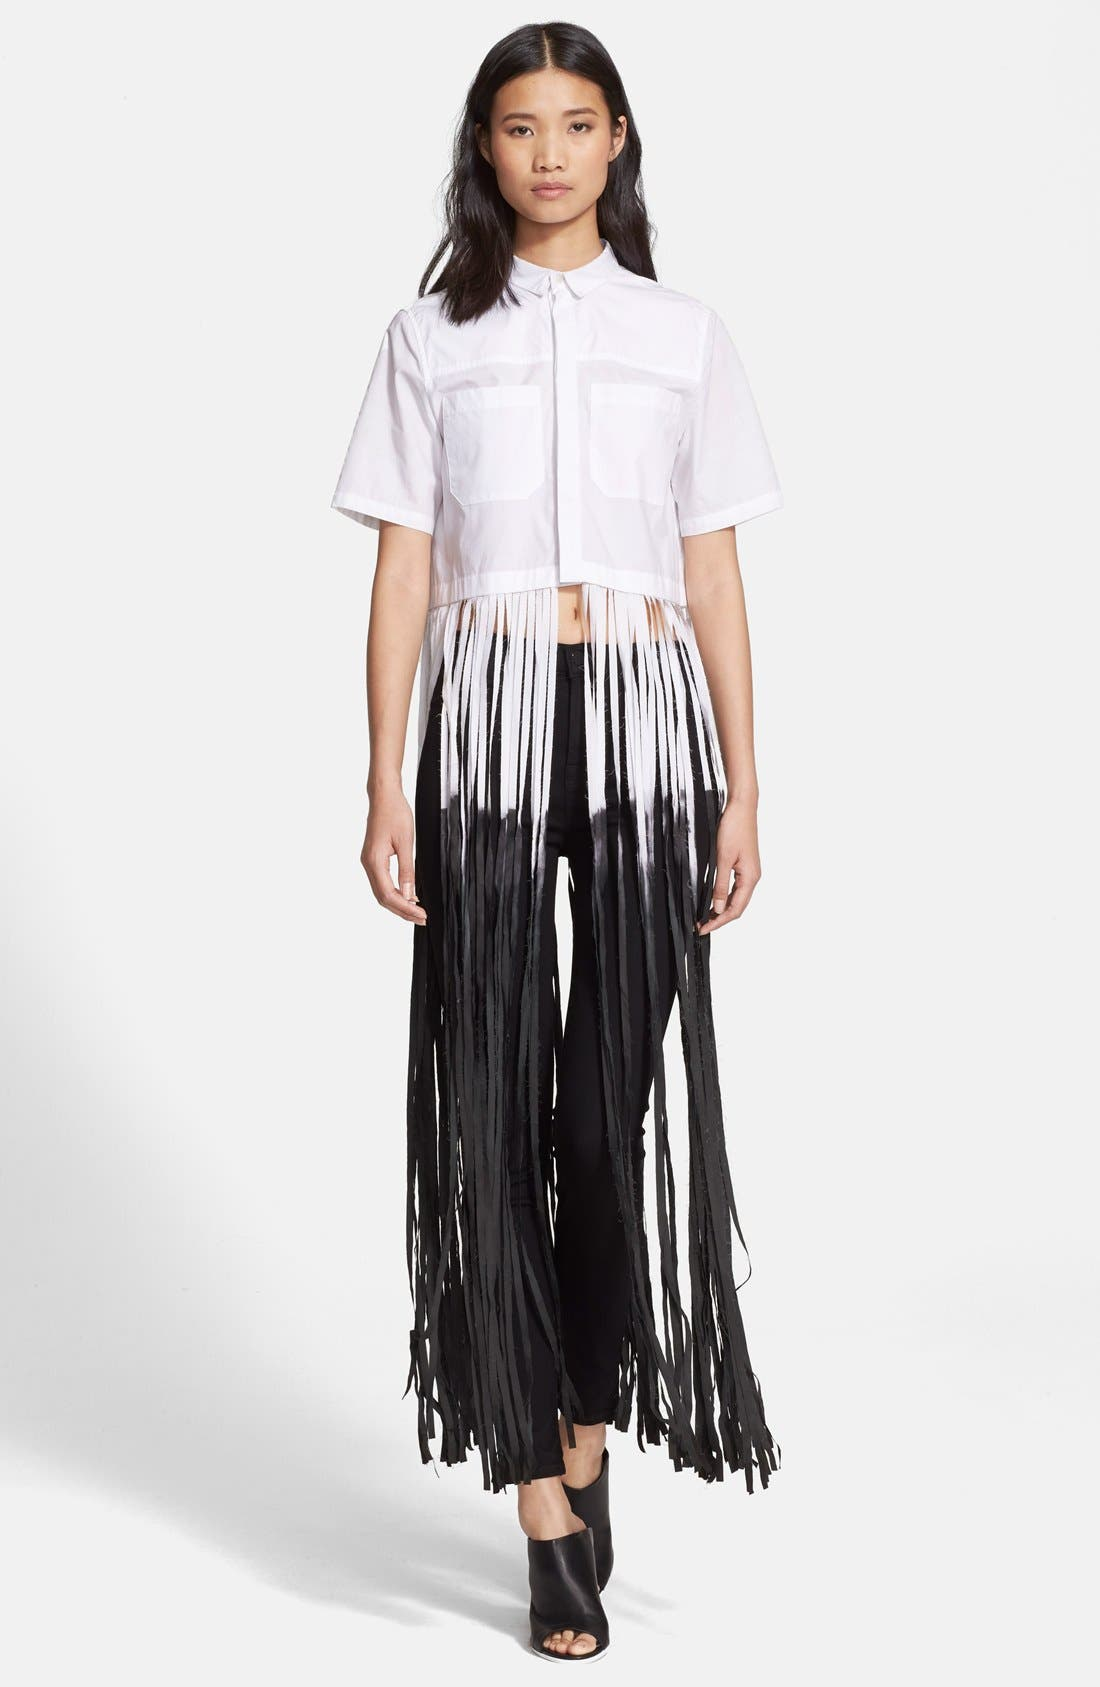 EACH X OTHER Dip Dyed Long Fringe Cotton Poplin Shirt, Main, color, 100